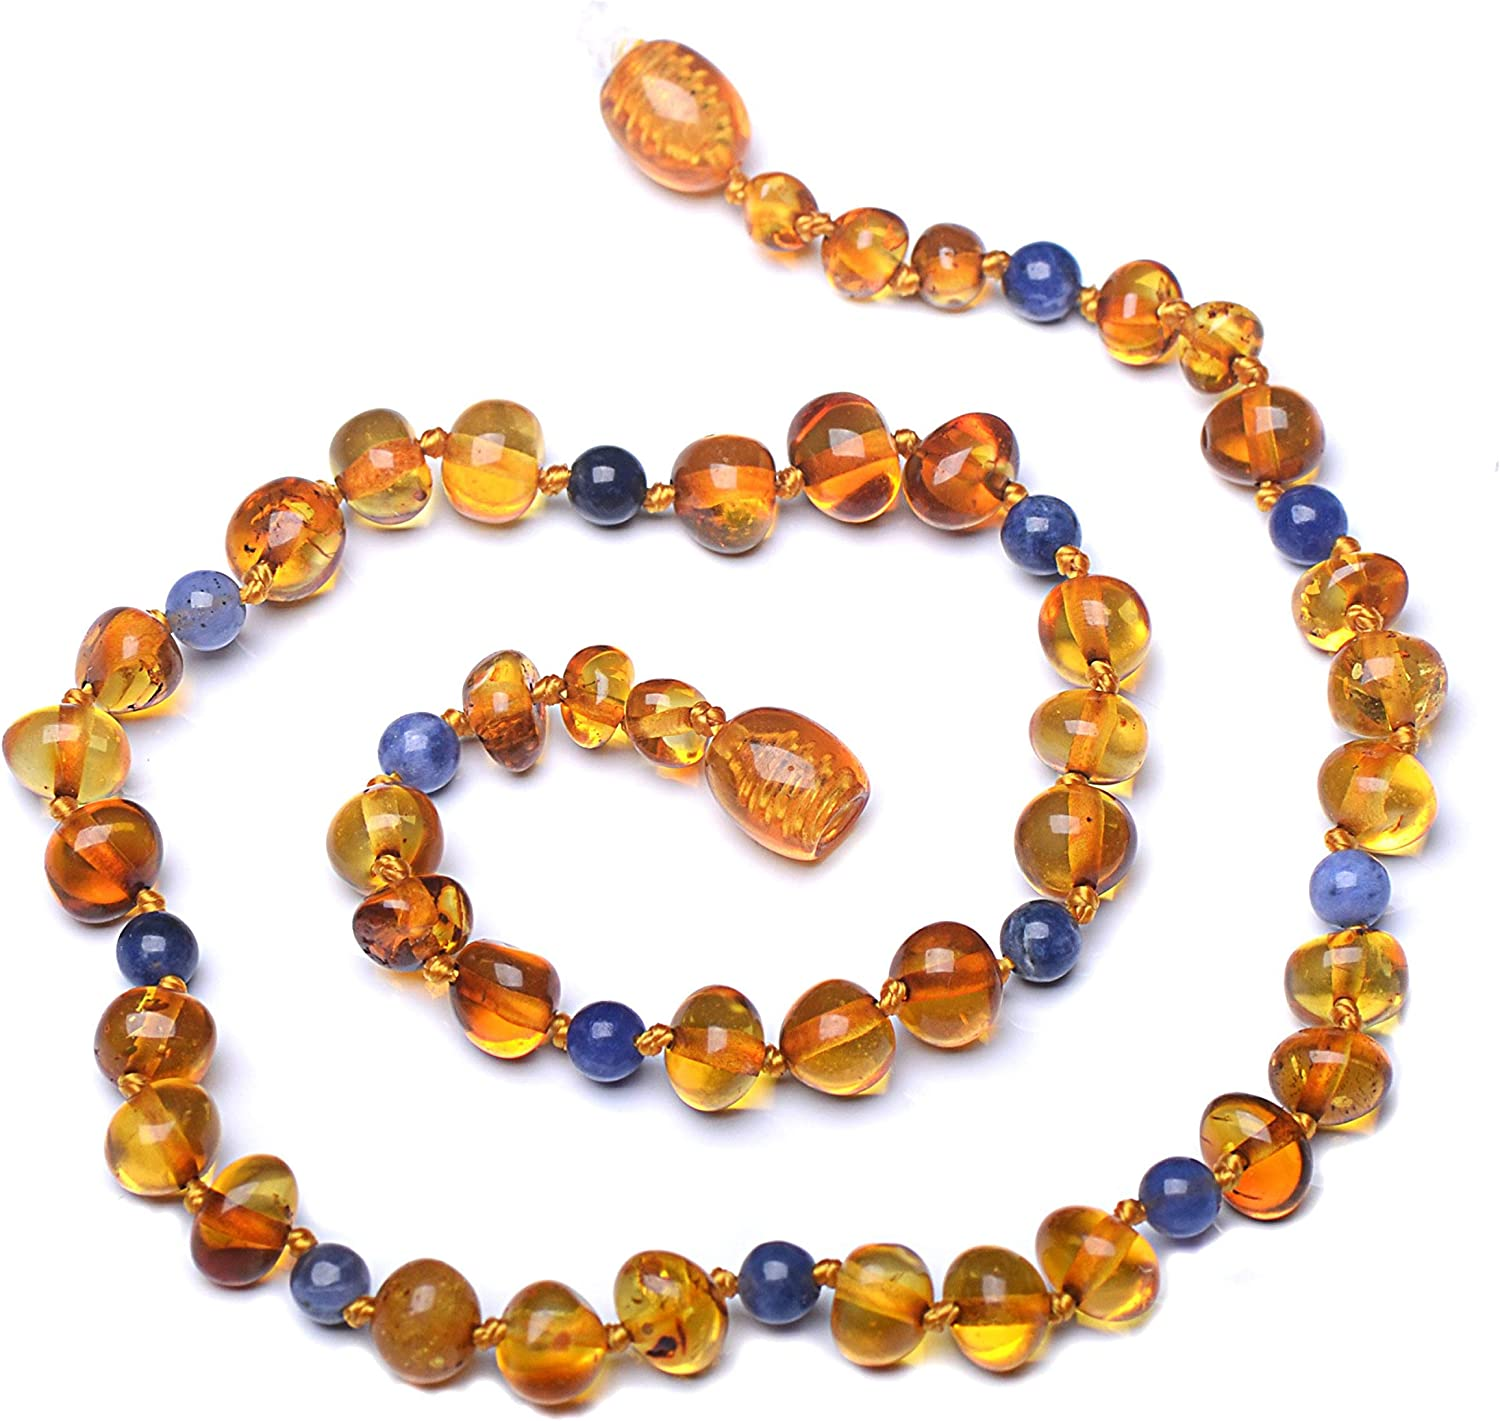 New Baltic Amber Necklace 100/% Natural Authentic Certified Handmade Polished Cognac Amber Beads 50/% Richer /& Higher in Value